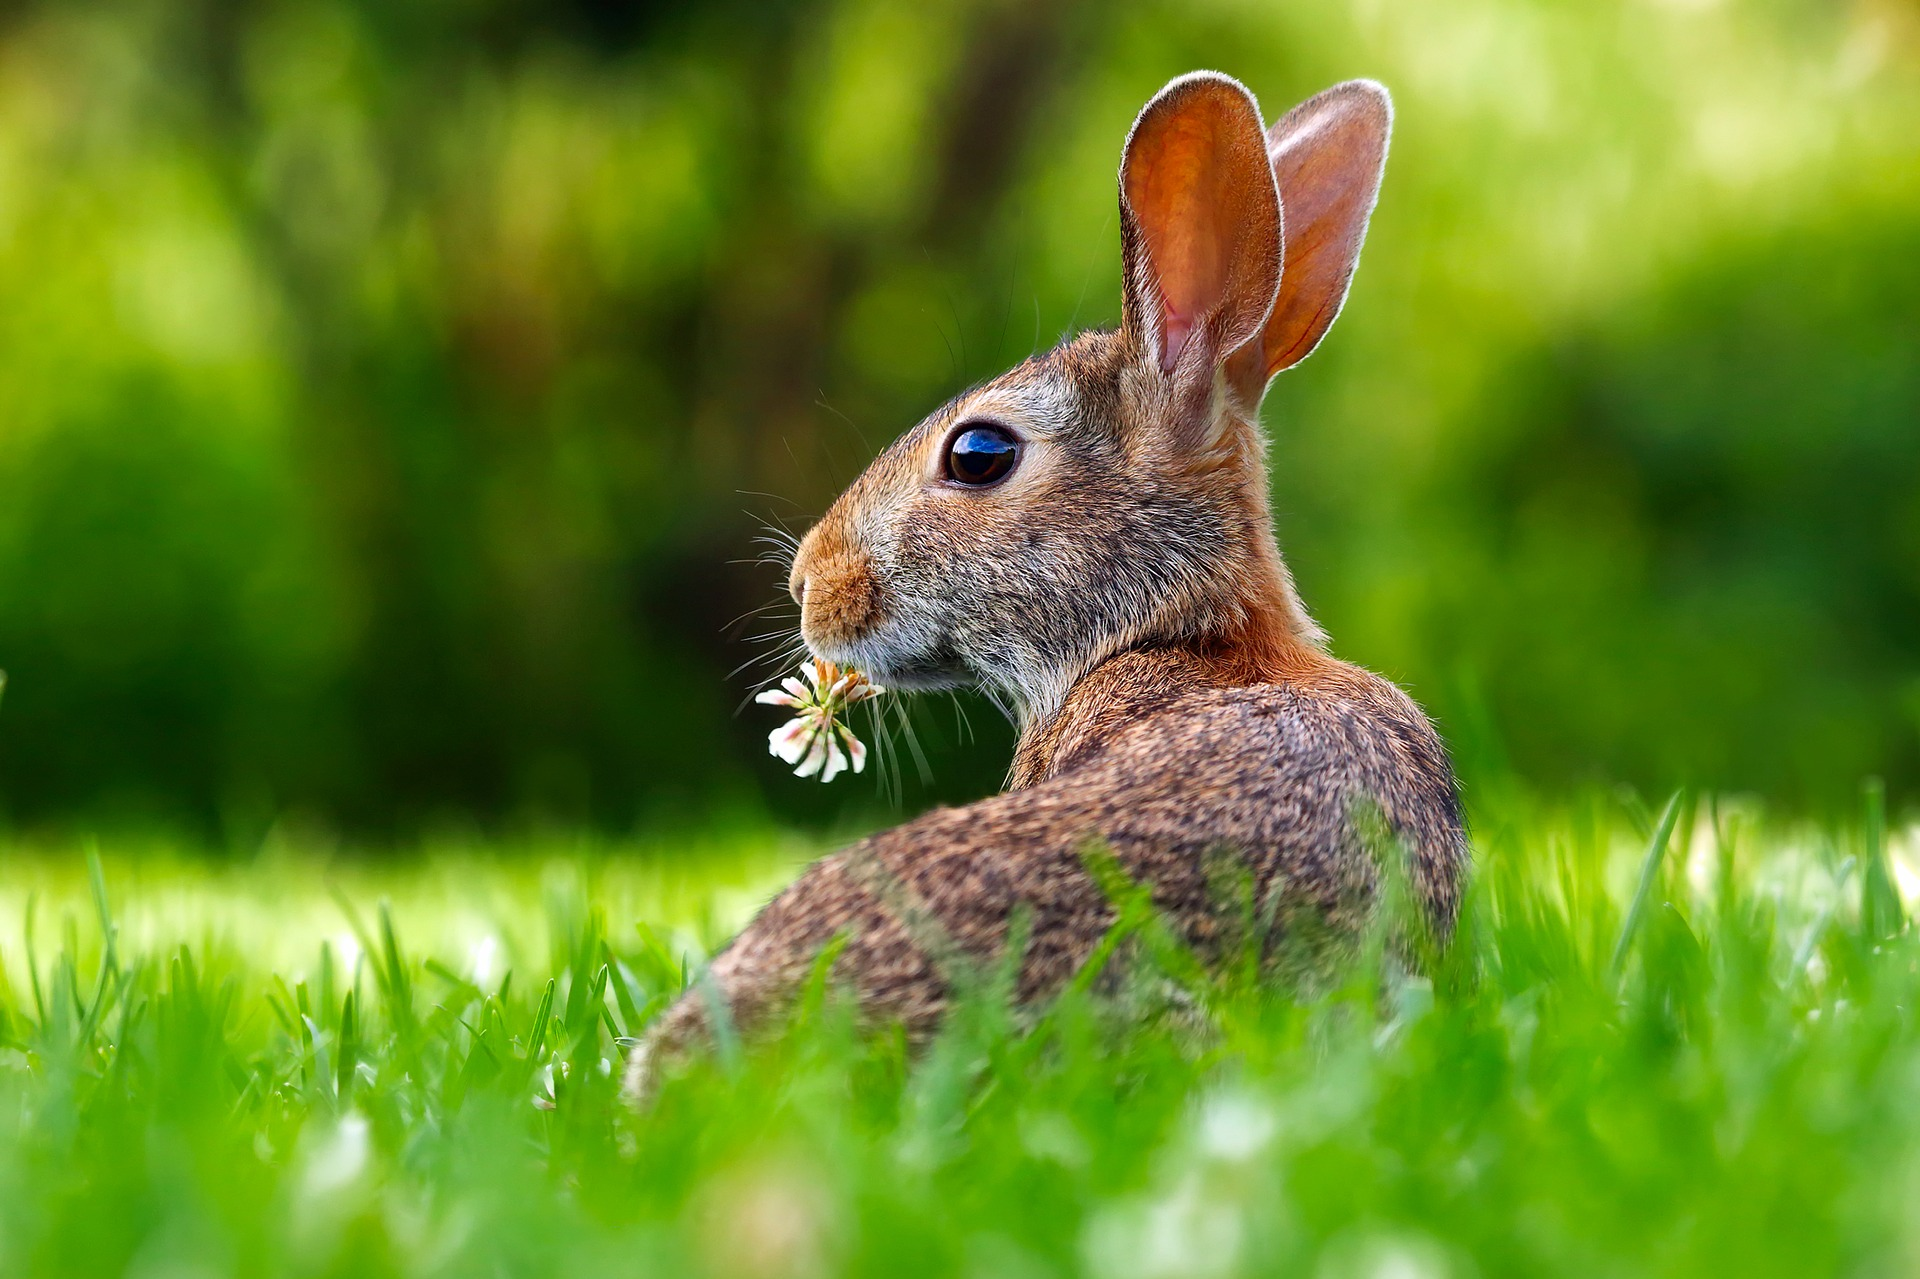 Rabbit with flower in grass